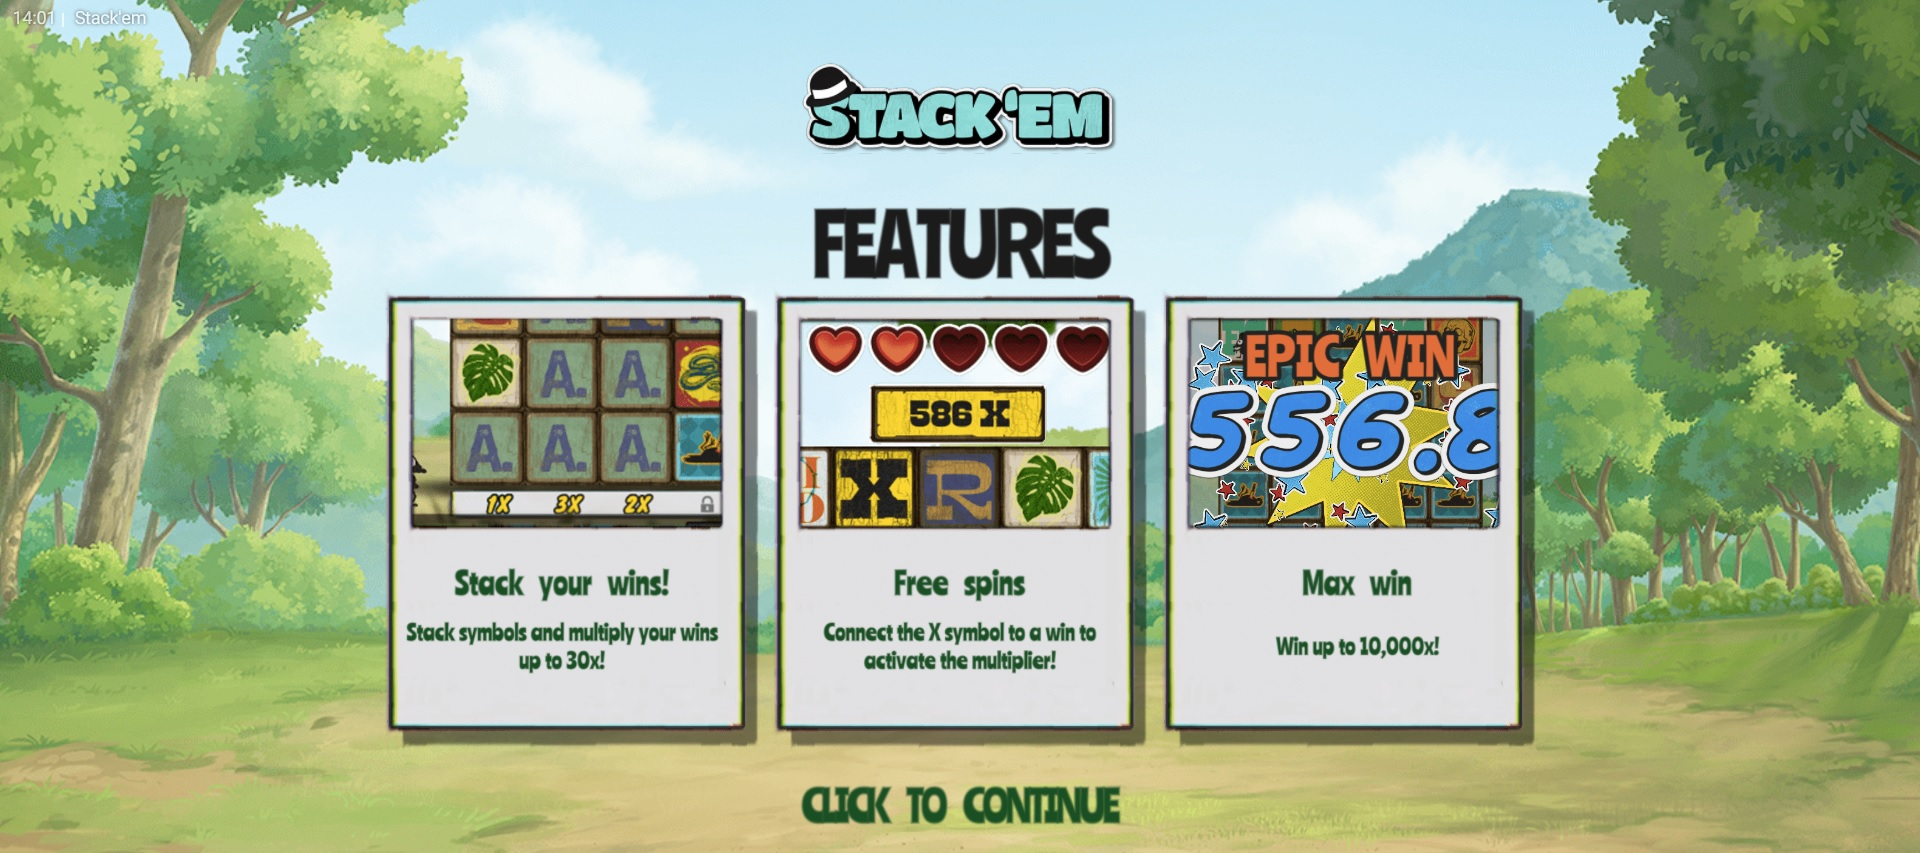 Special Features in stack em from hacksaw gaming